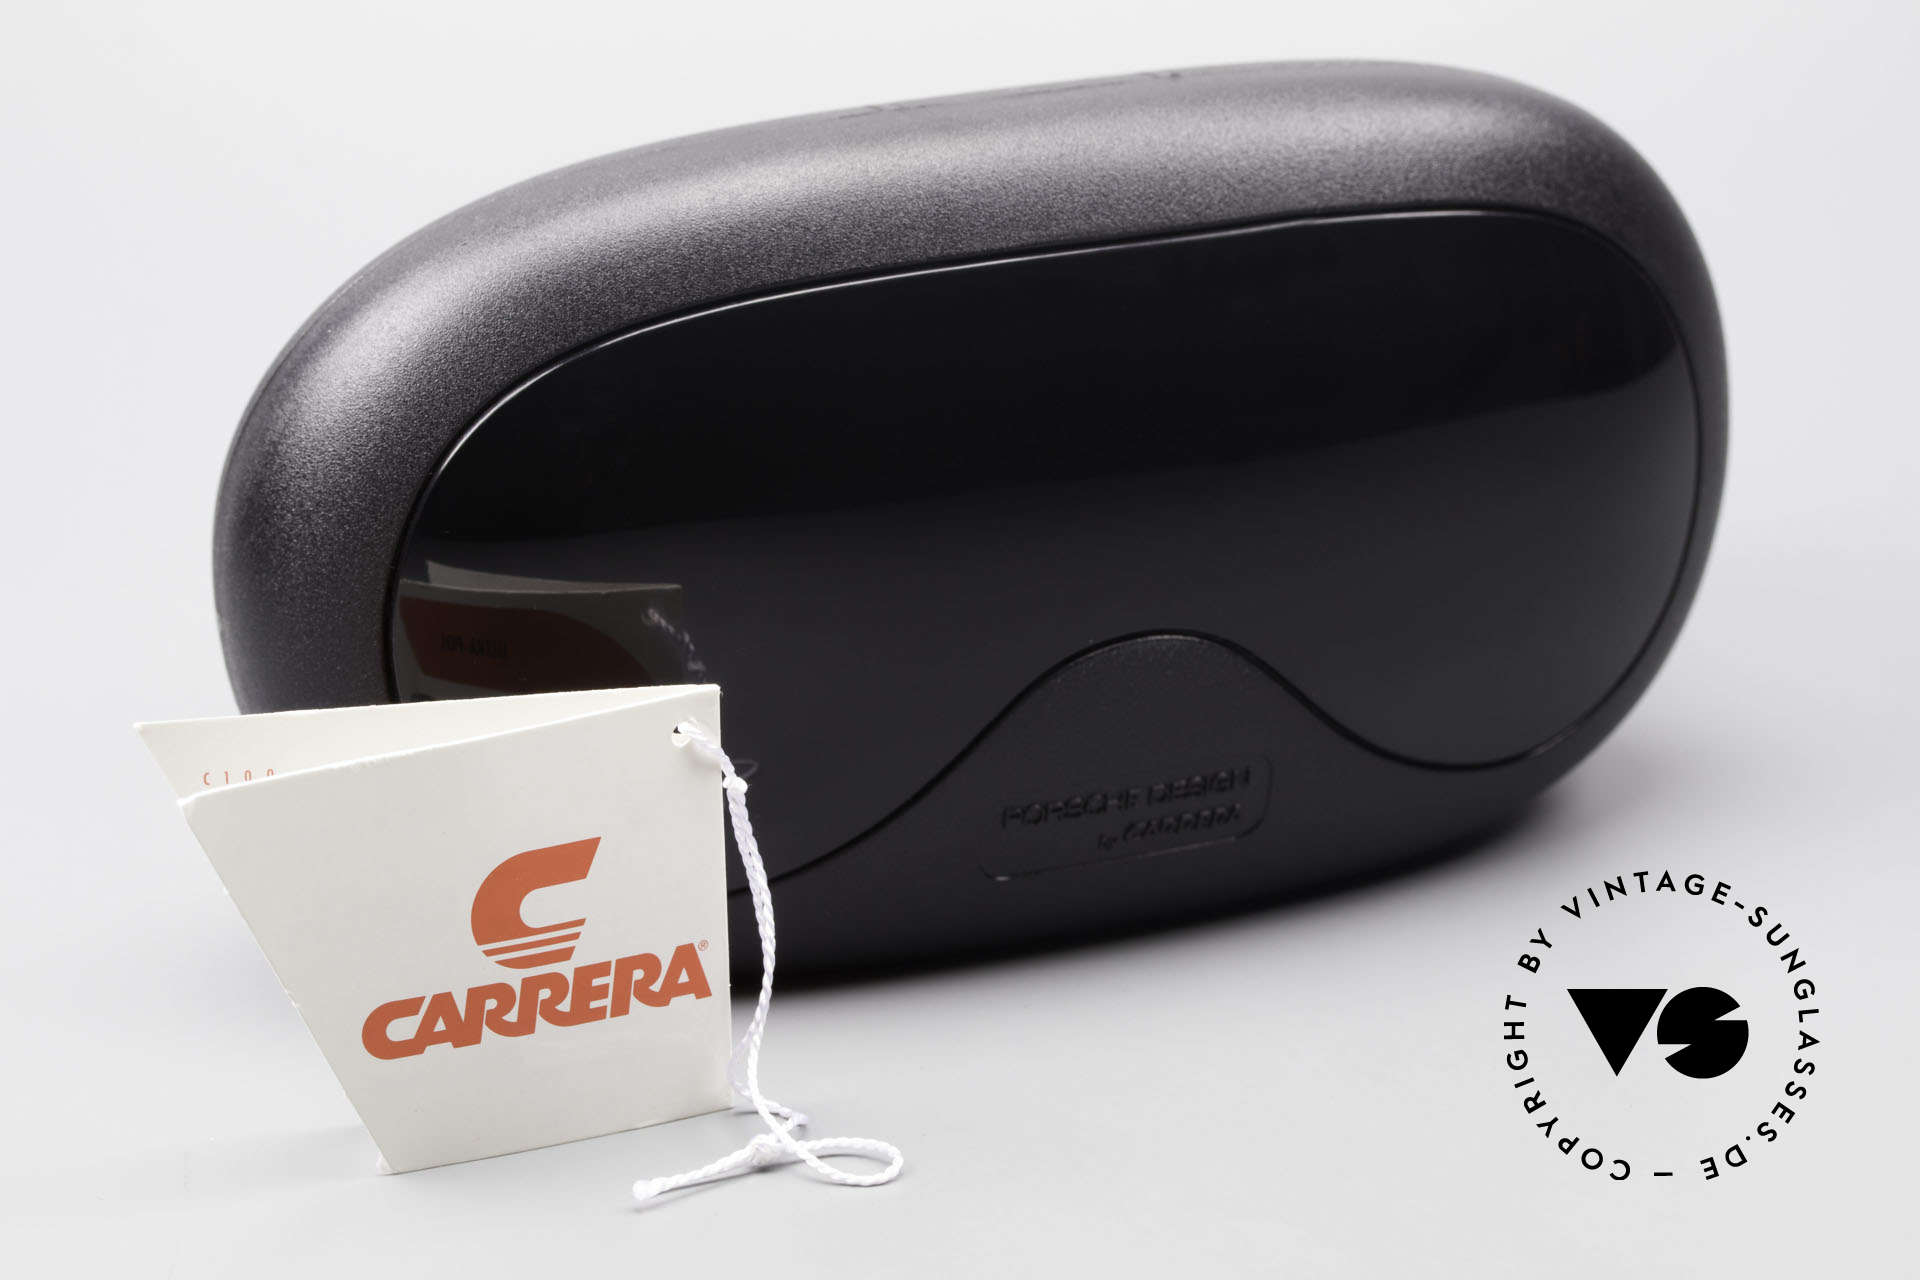 Carrera 5565 Old Vintage Sunglasses 1980's, Size: large, Made for Men and Women